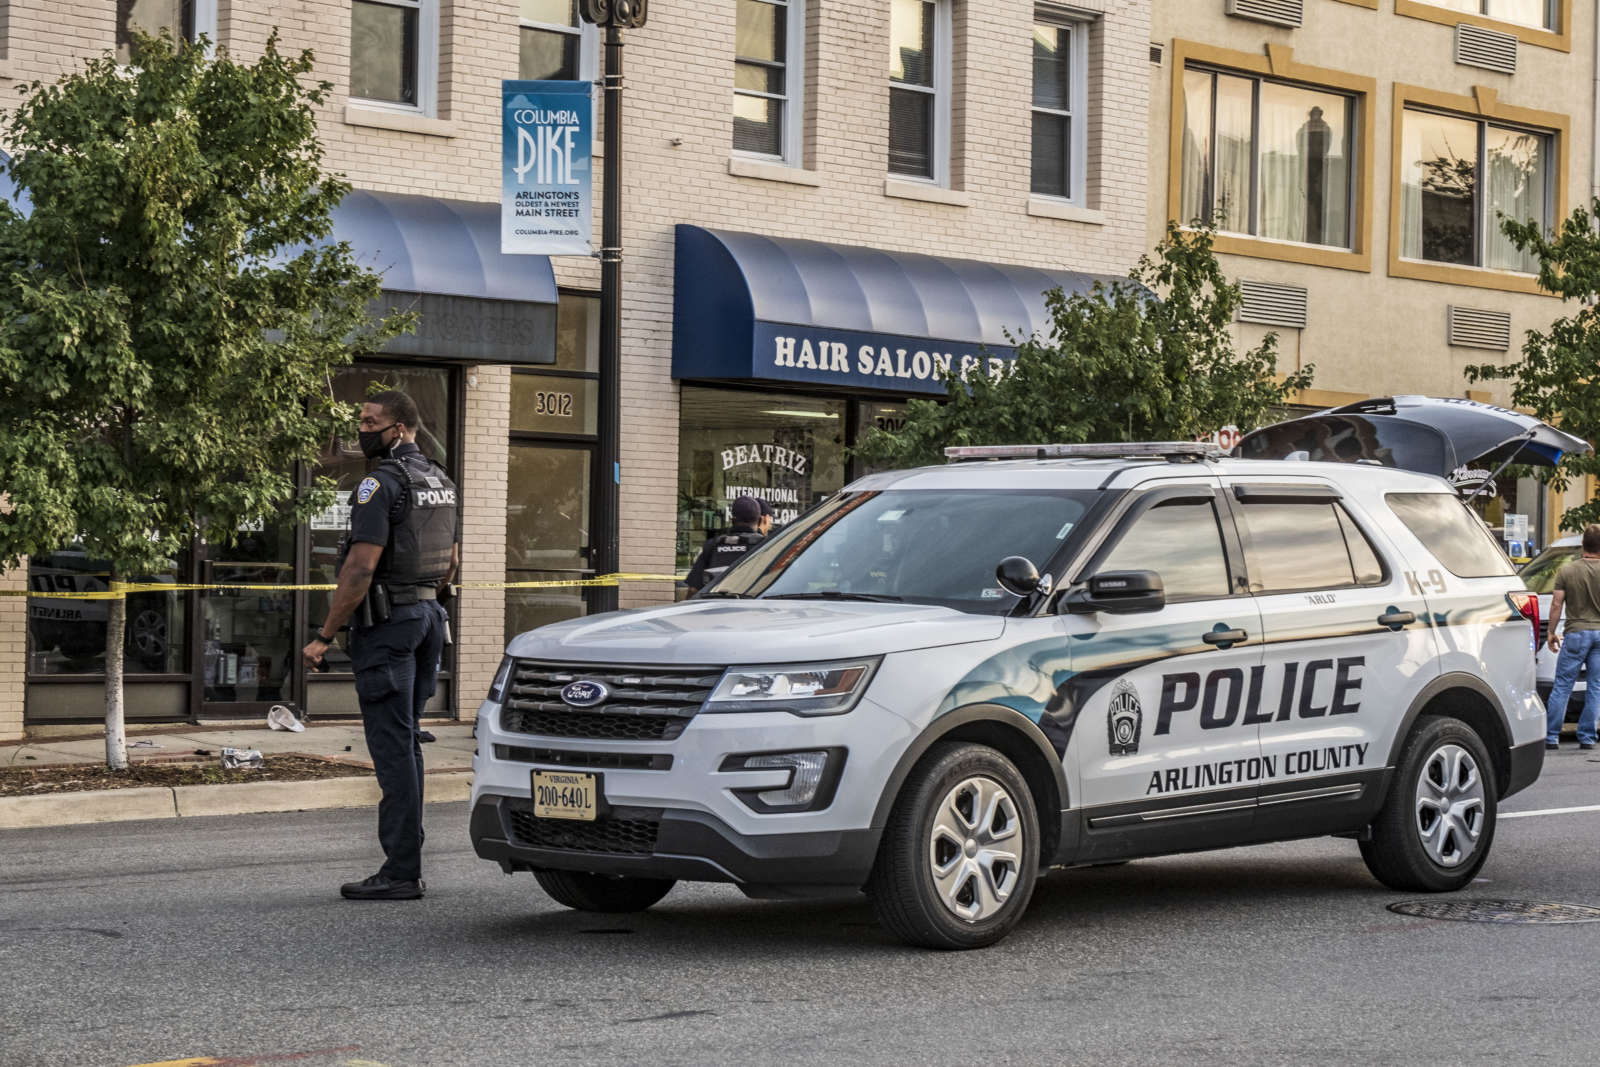 Carjackings, Assaults Rose in 2020, While Alcohol-Related Crimes Fell